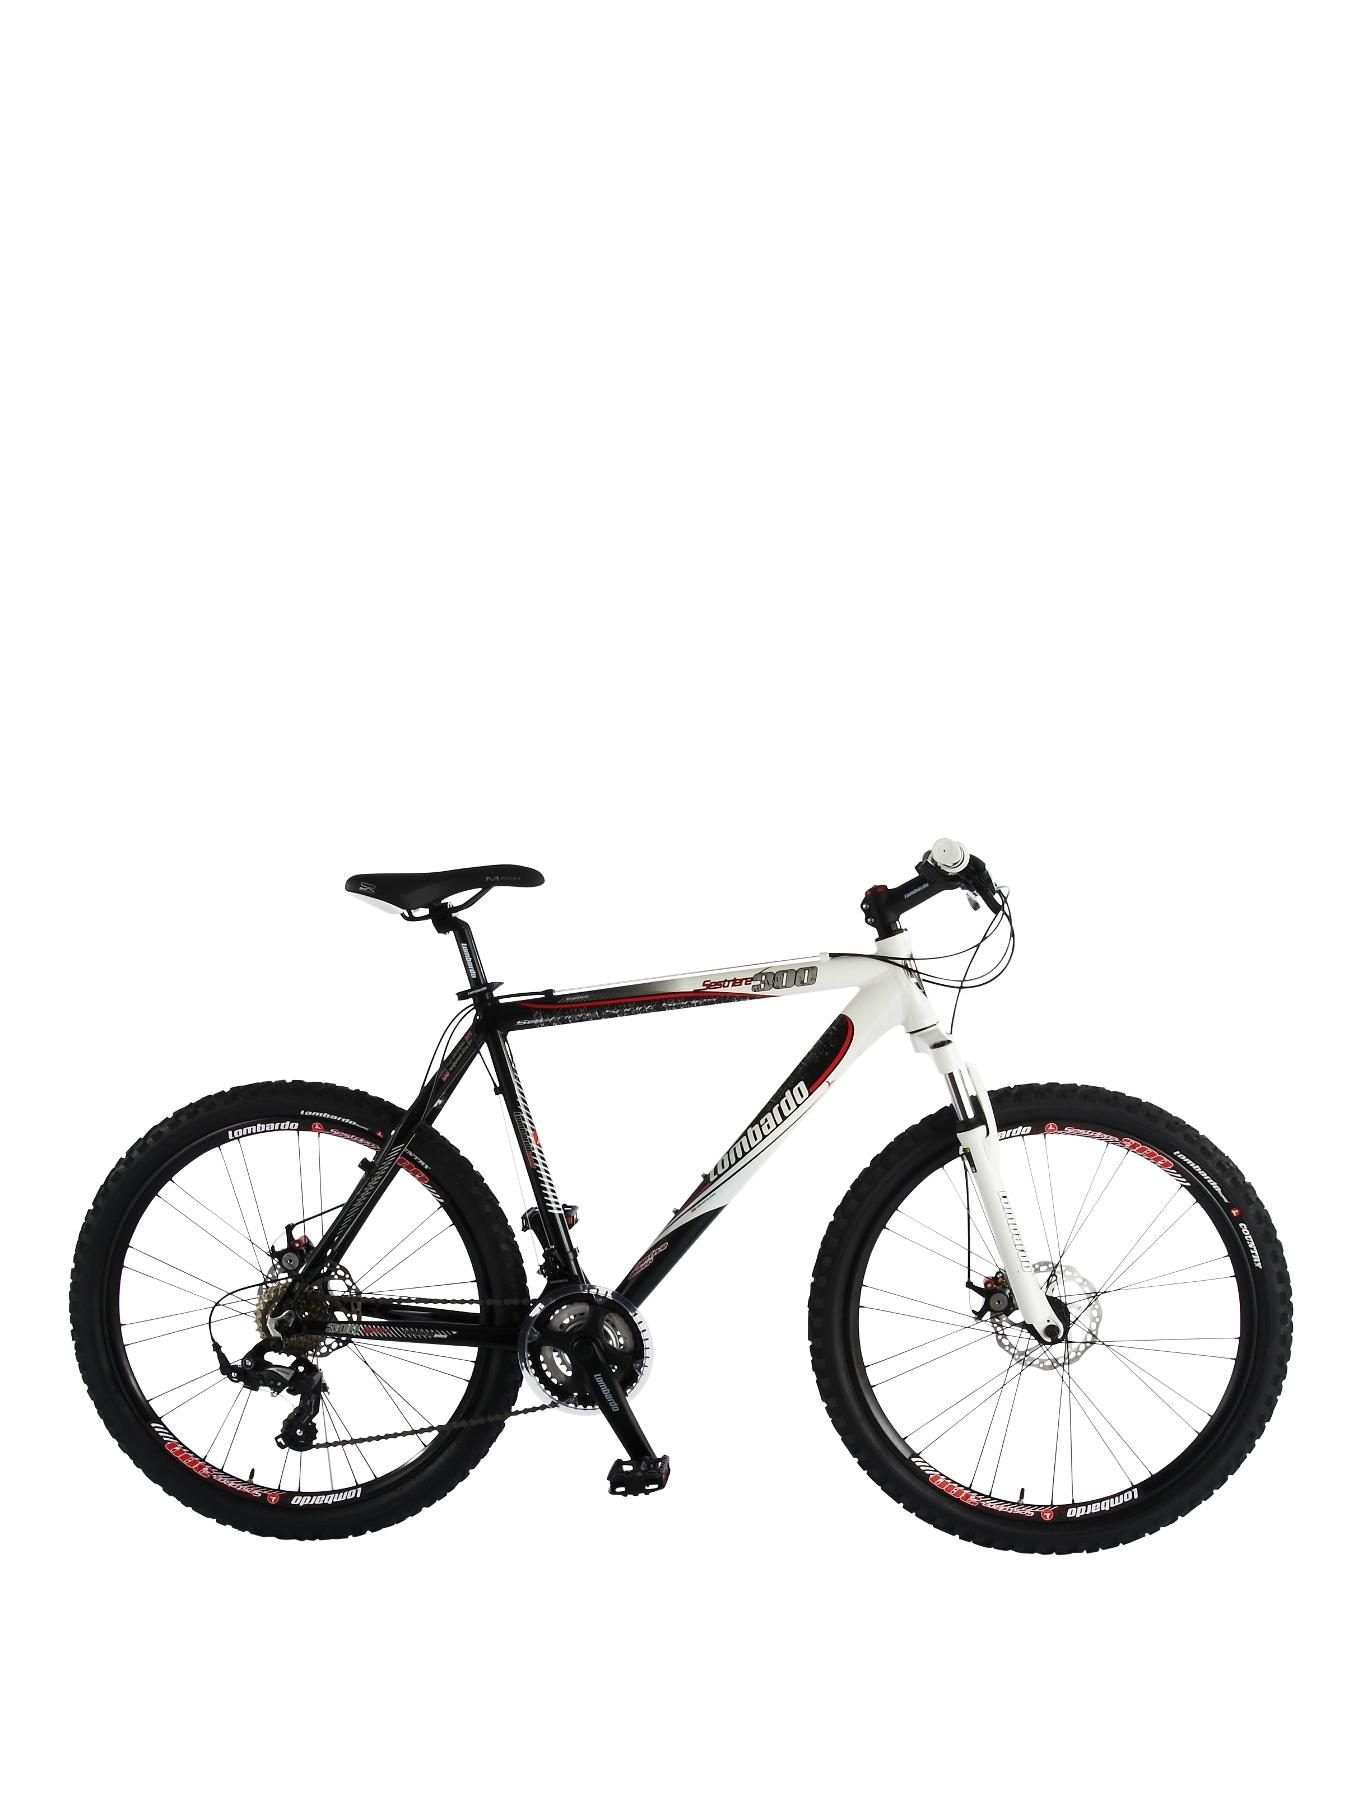 Sestriere 300 Alloy 21 Speed Front Suspension Mens Bike